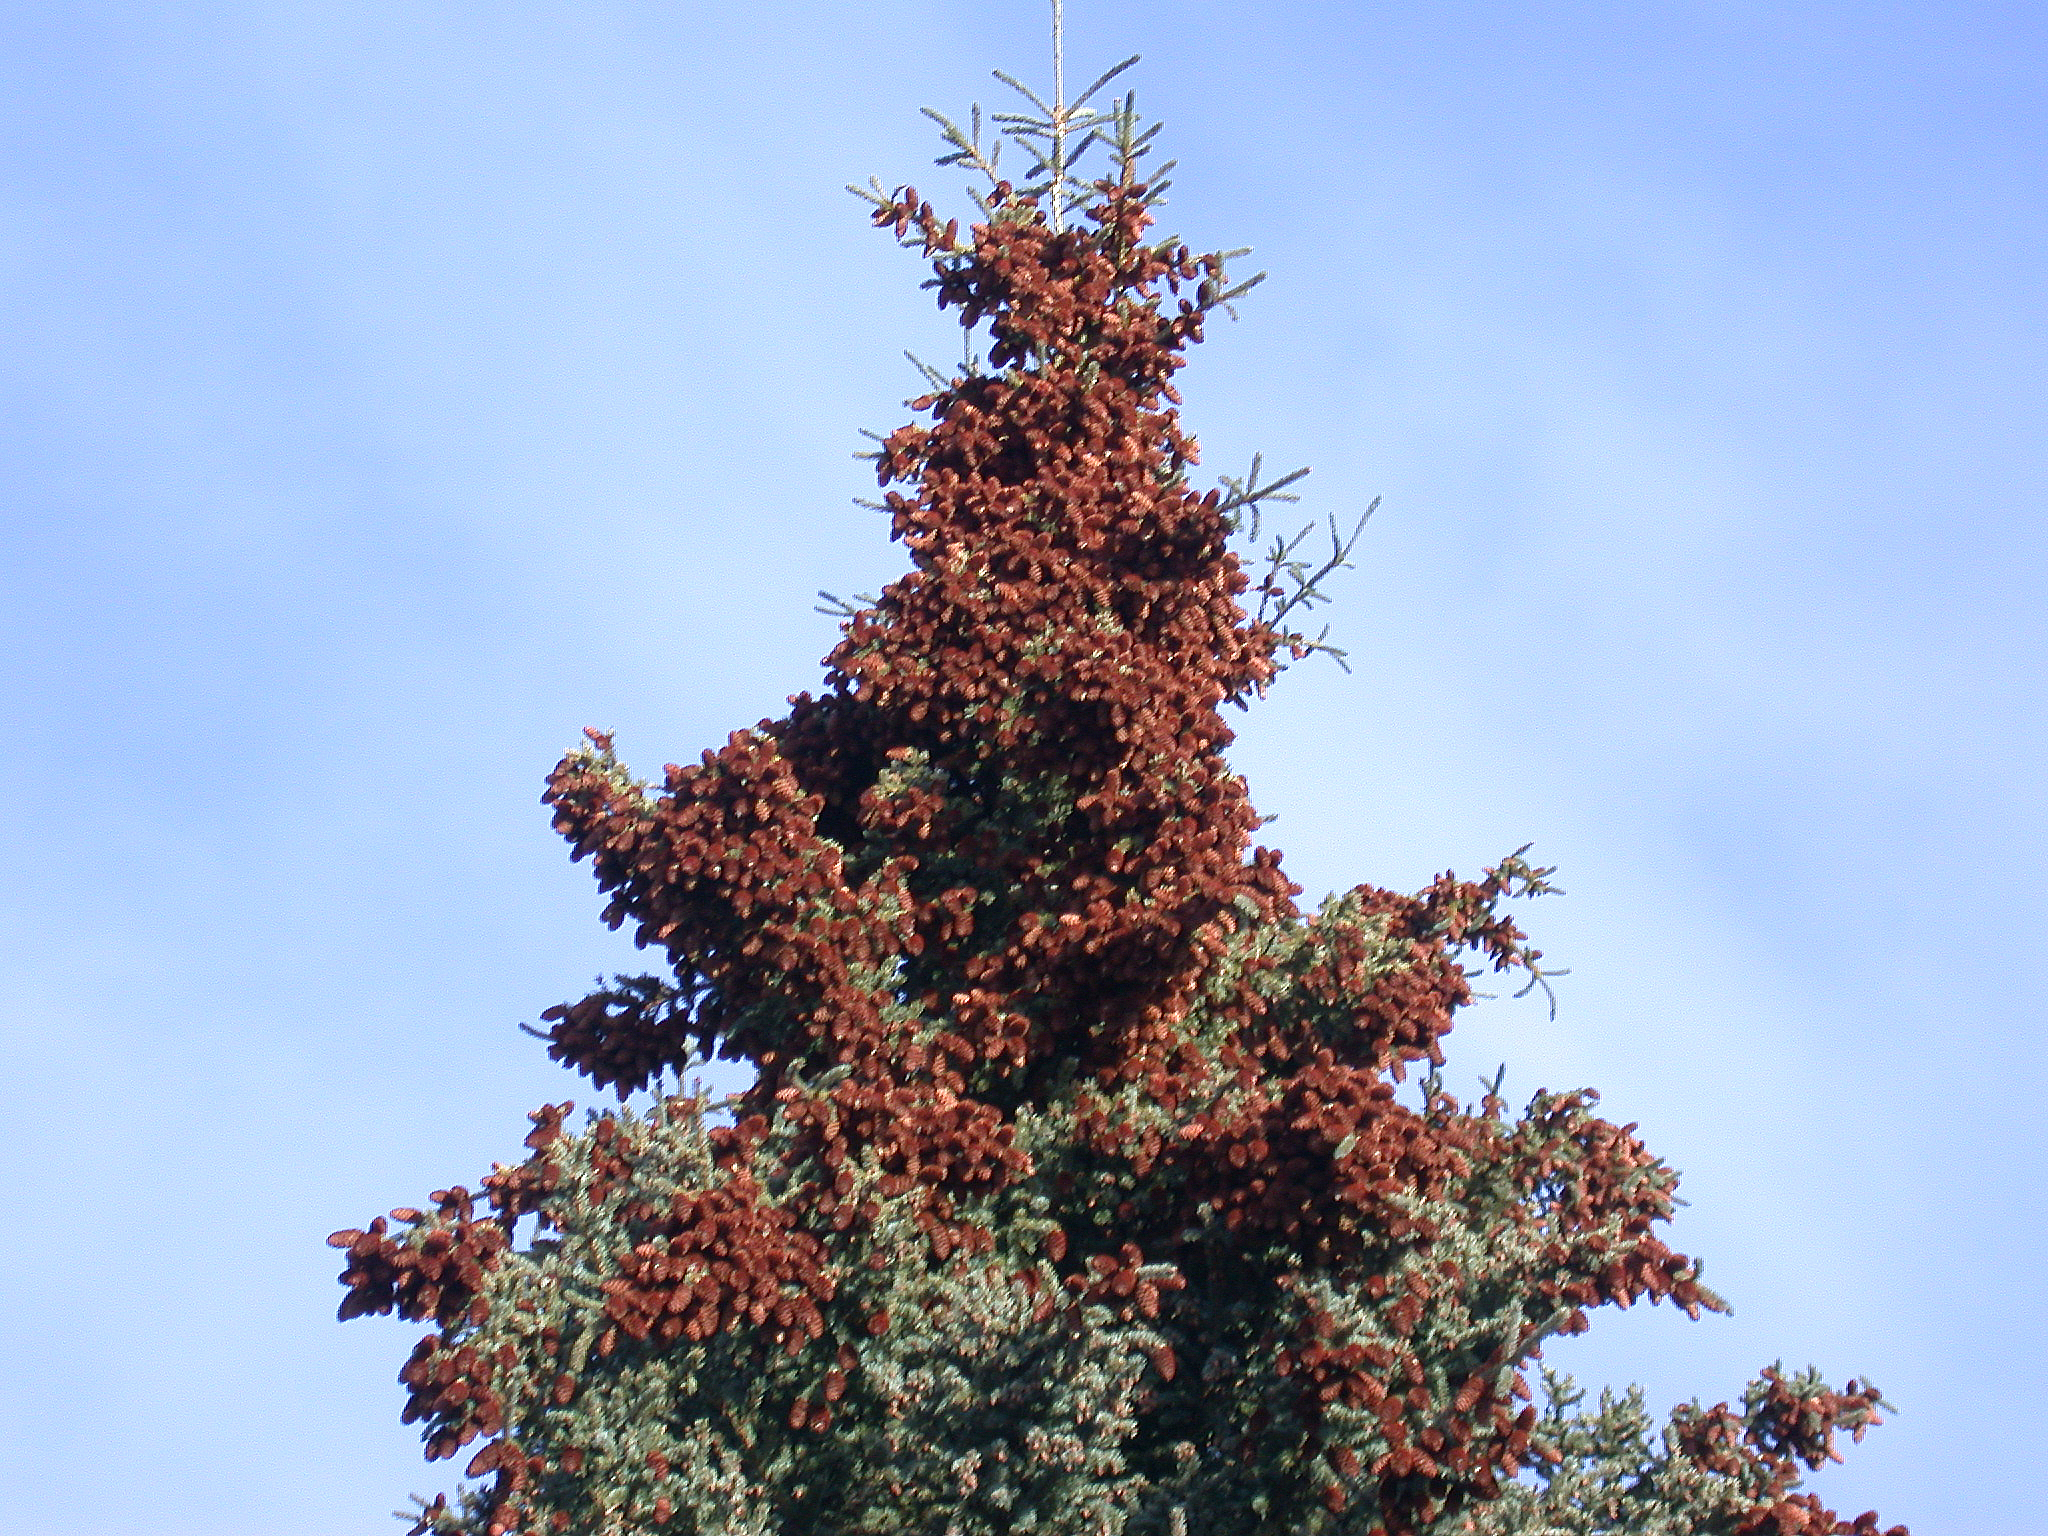 The late-season brown cones of a masting spruce is concentrated in the upper third of the tree. Photo by Jalene LaMontagne